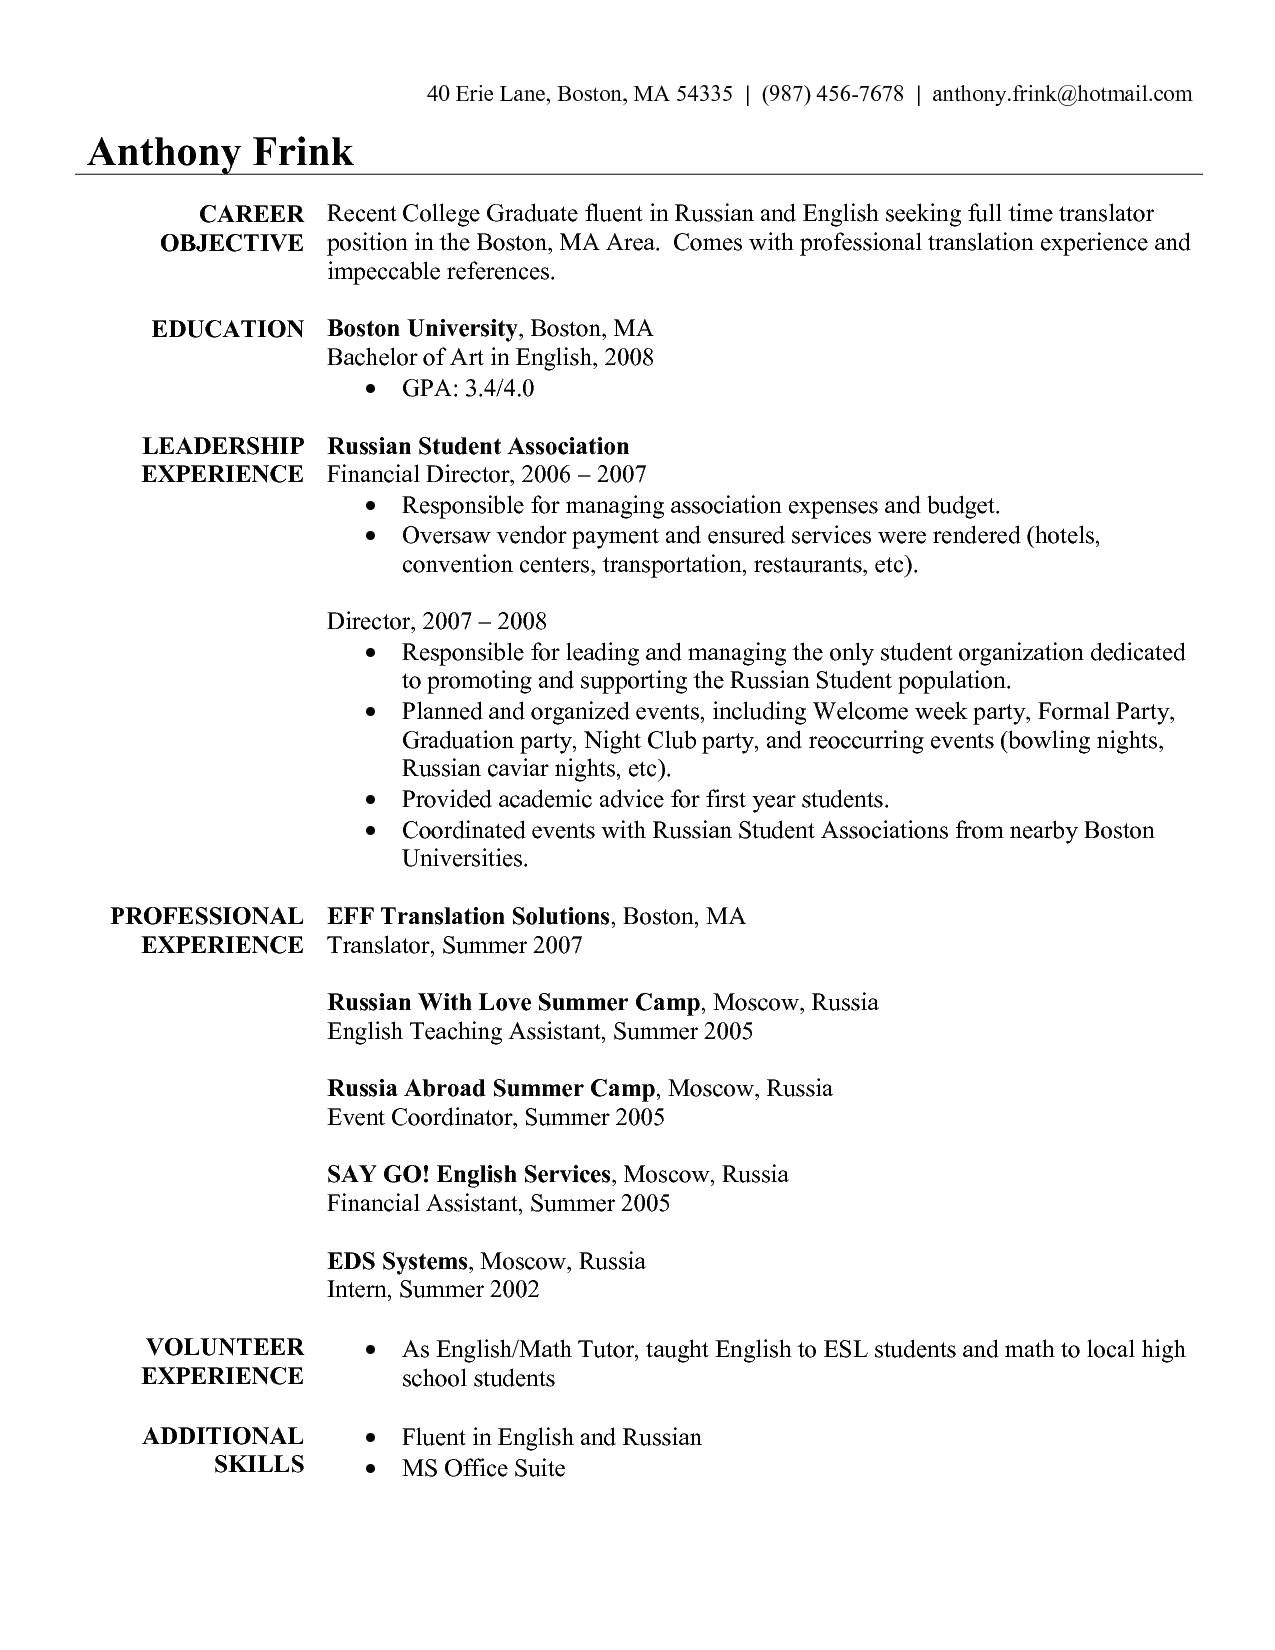 Sample Resume for Recent College Graduate with No Experience Elegant Sample Resume for Recent College Graduate with No